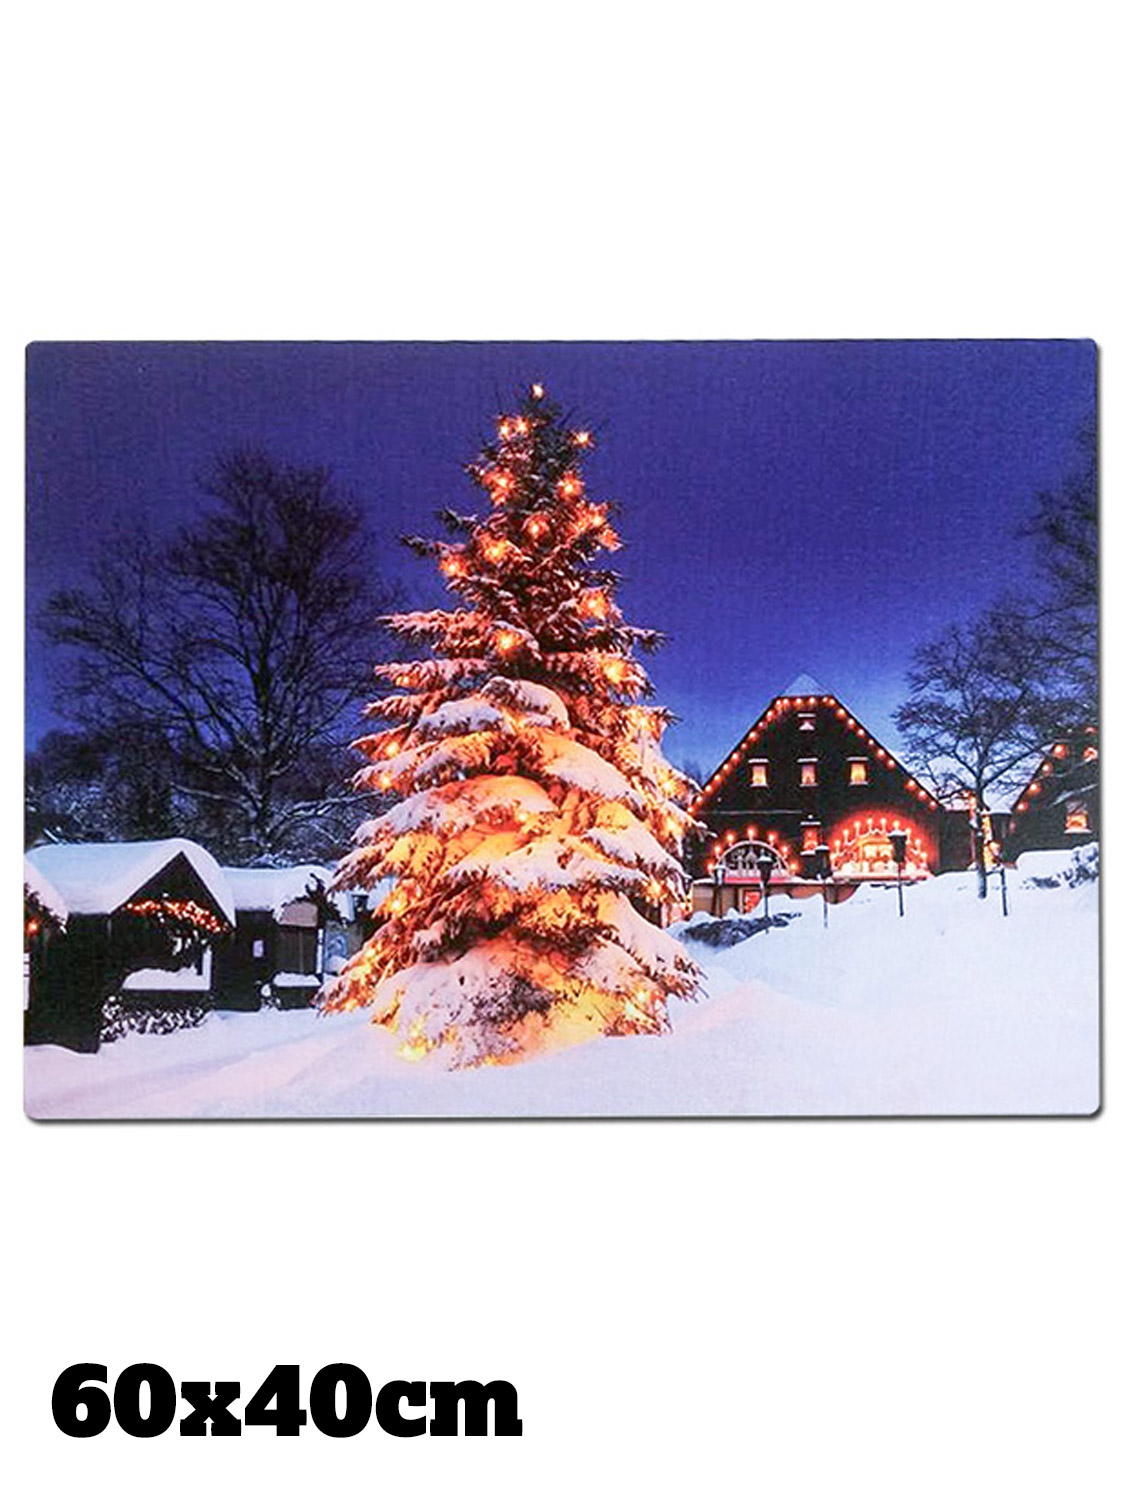 Christmas Wall Scene Decorations : Christmas canvas led light up tree picture wall